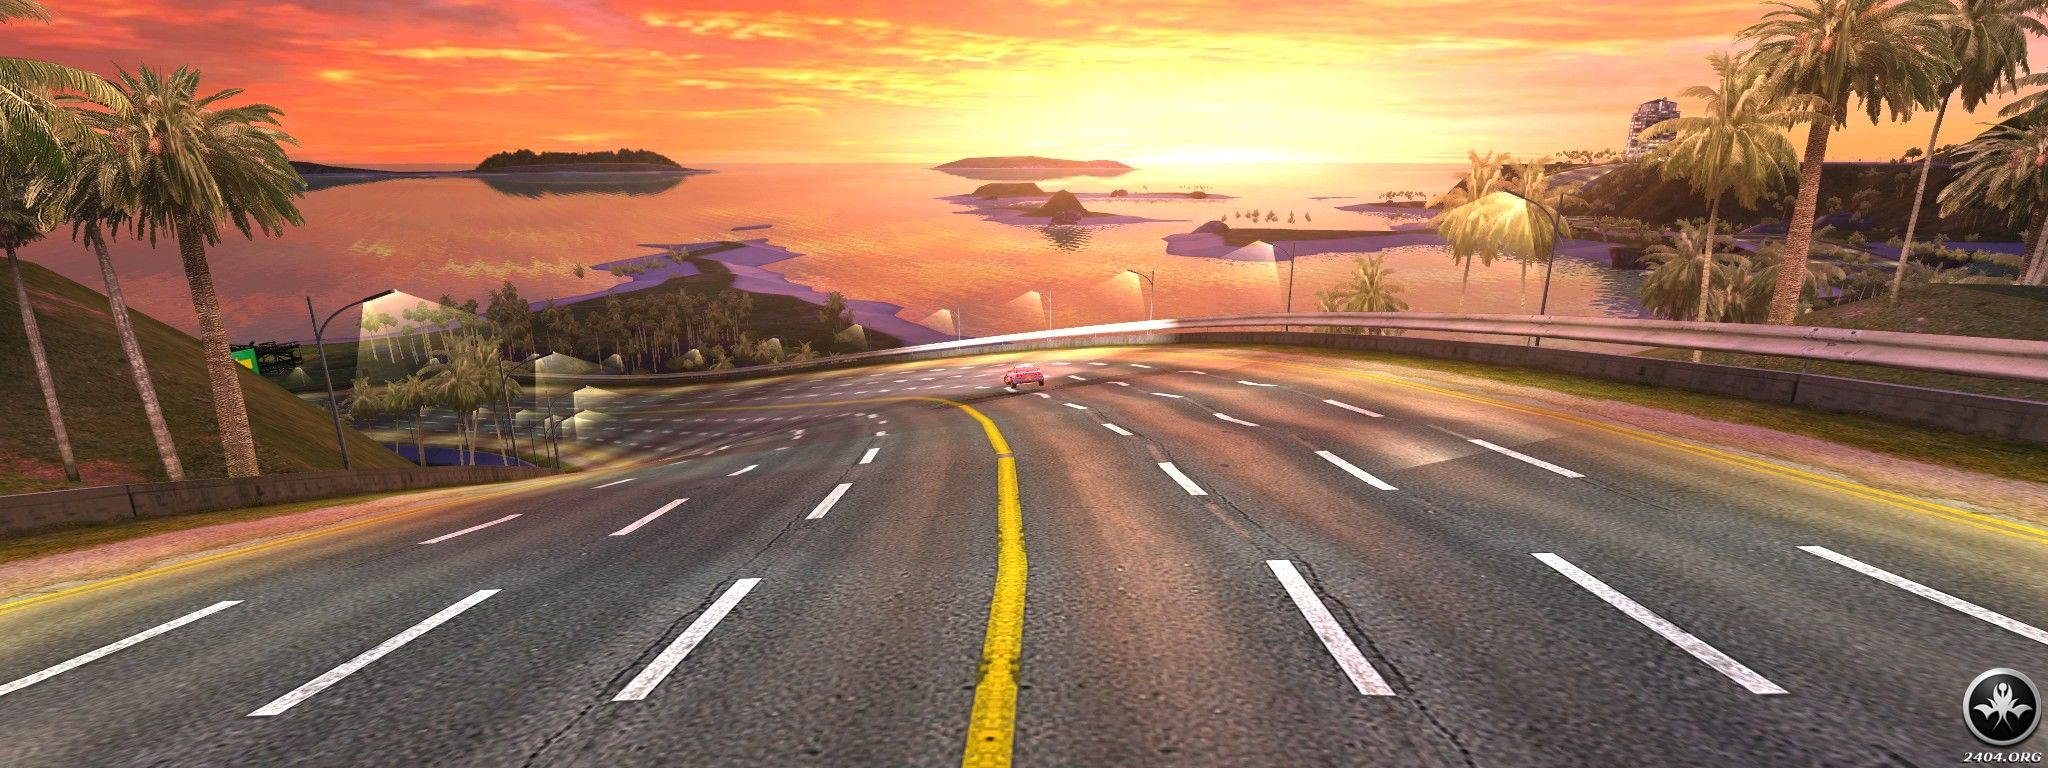 TrackMania Sunrise Windows Down into the sunset